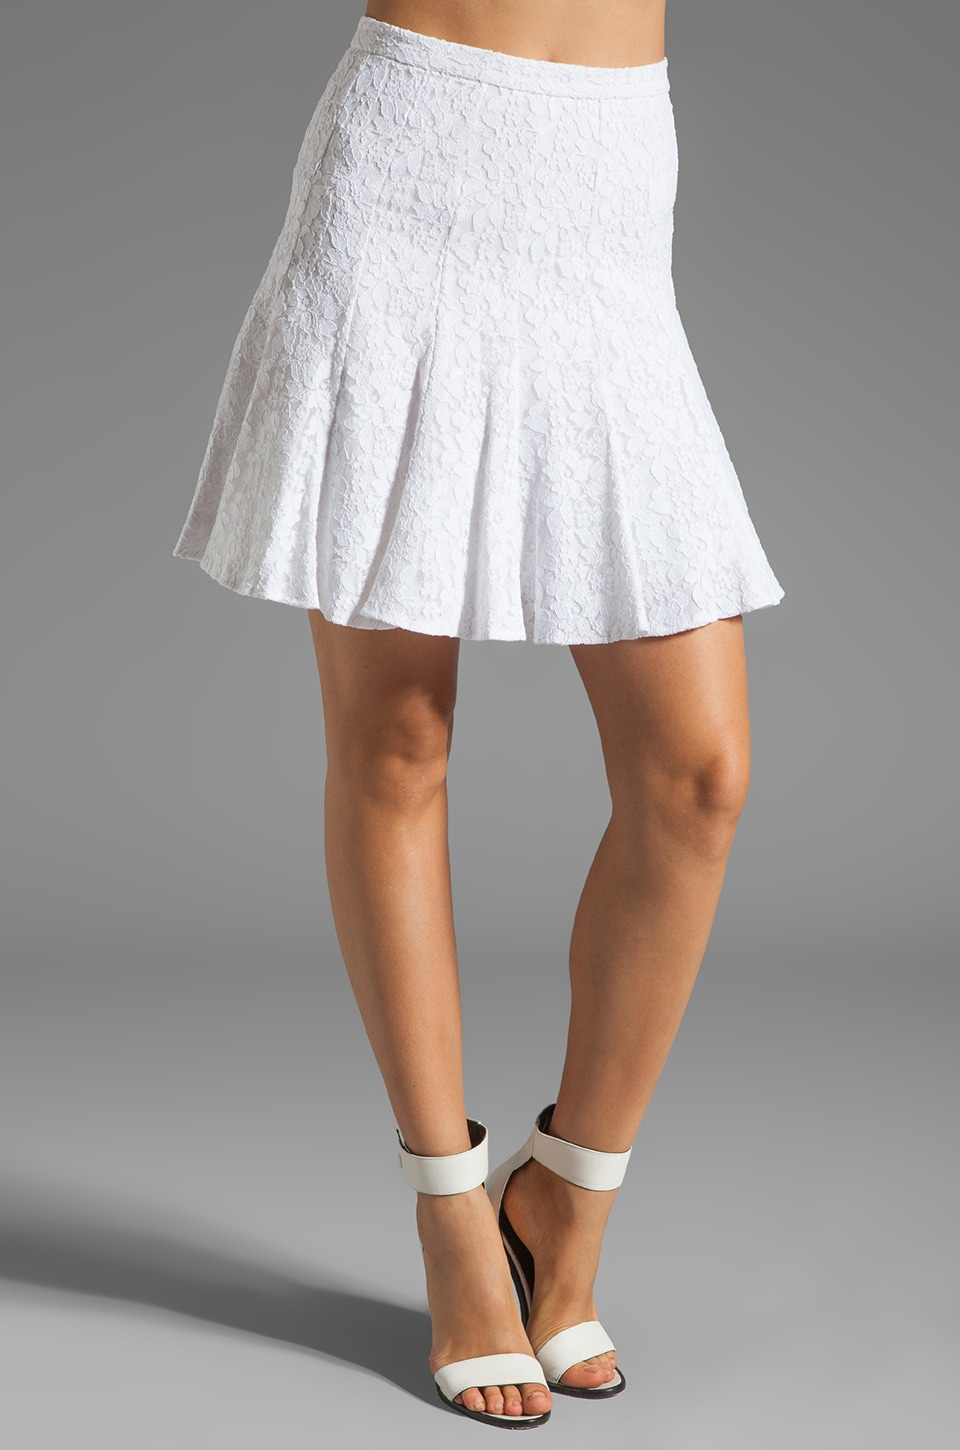 BCBGMAXAZRIA Lace Skirt in White